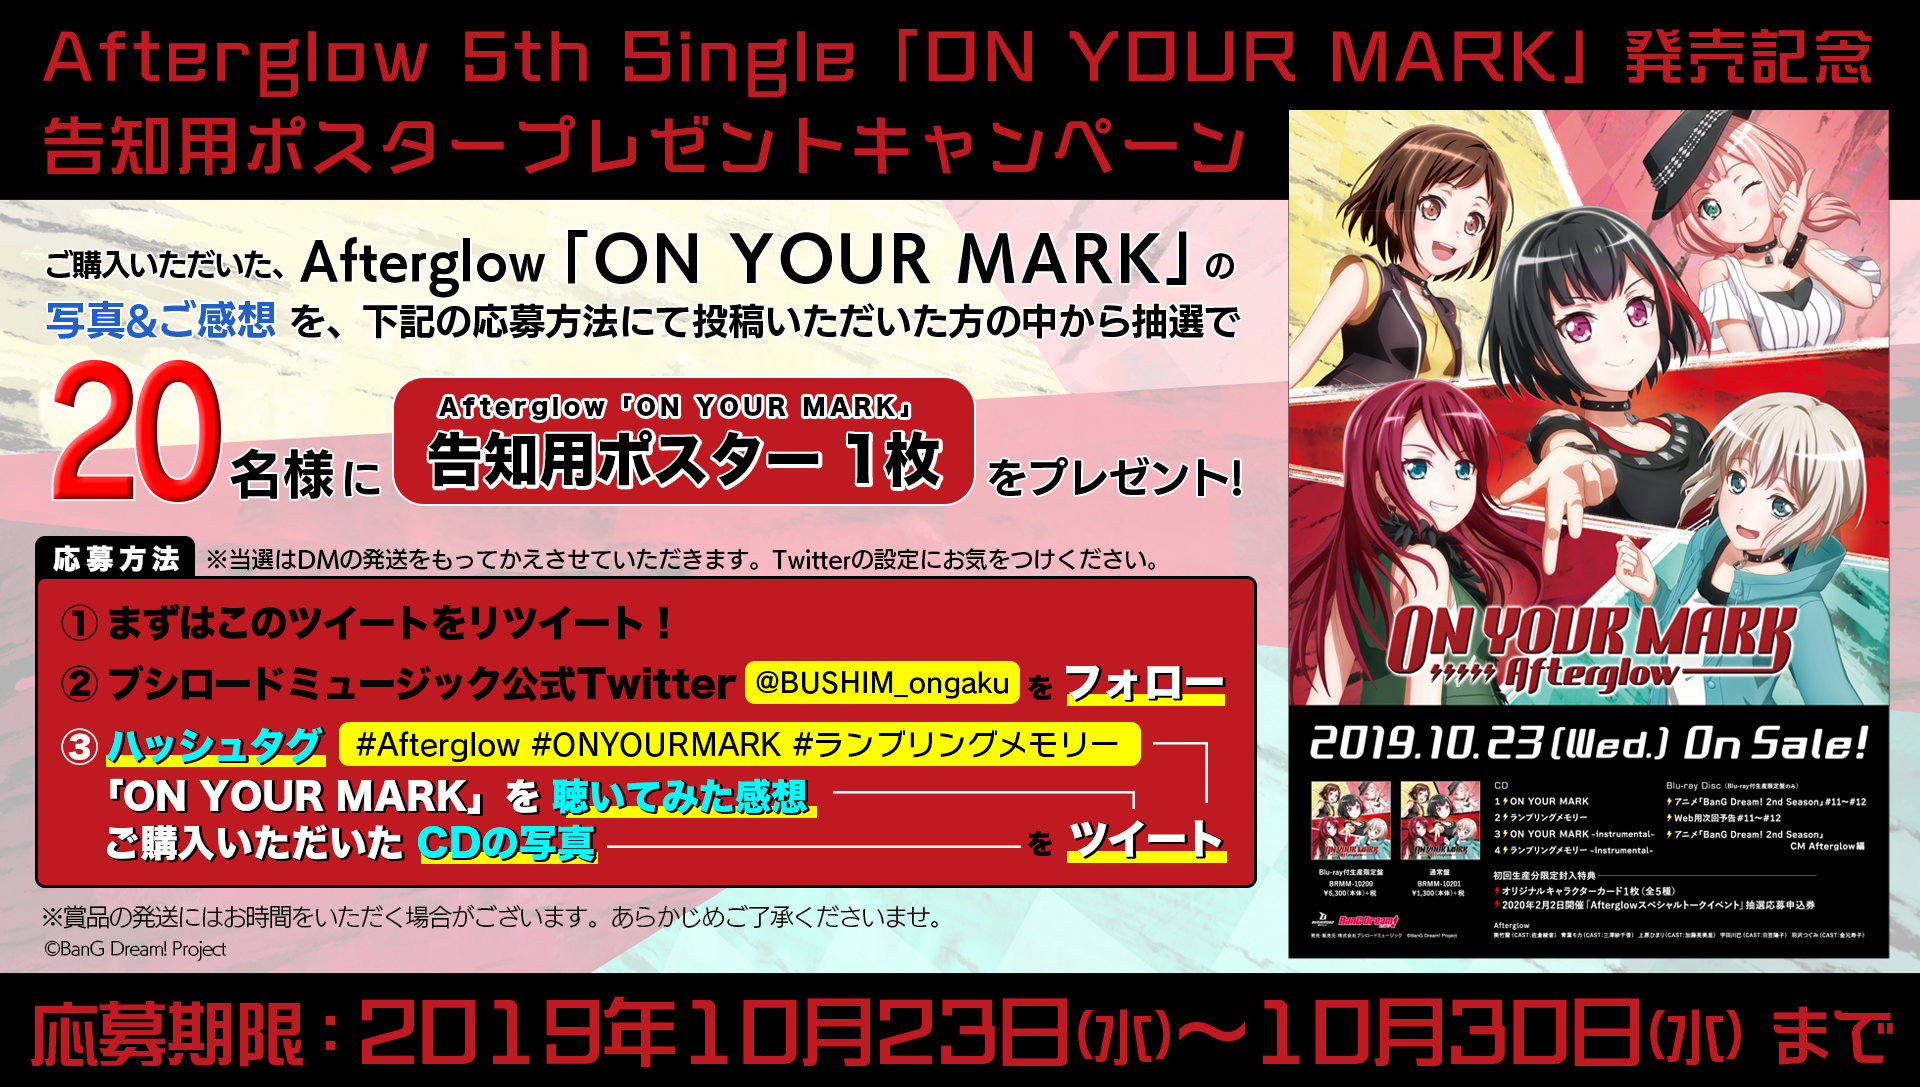 Afterglow 5th Single「ON YOUR MARK」発売記念 告知用ポスタープレゼントキャンペーン開催